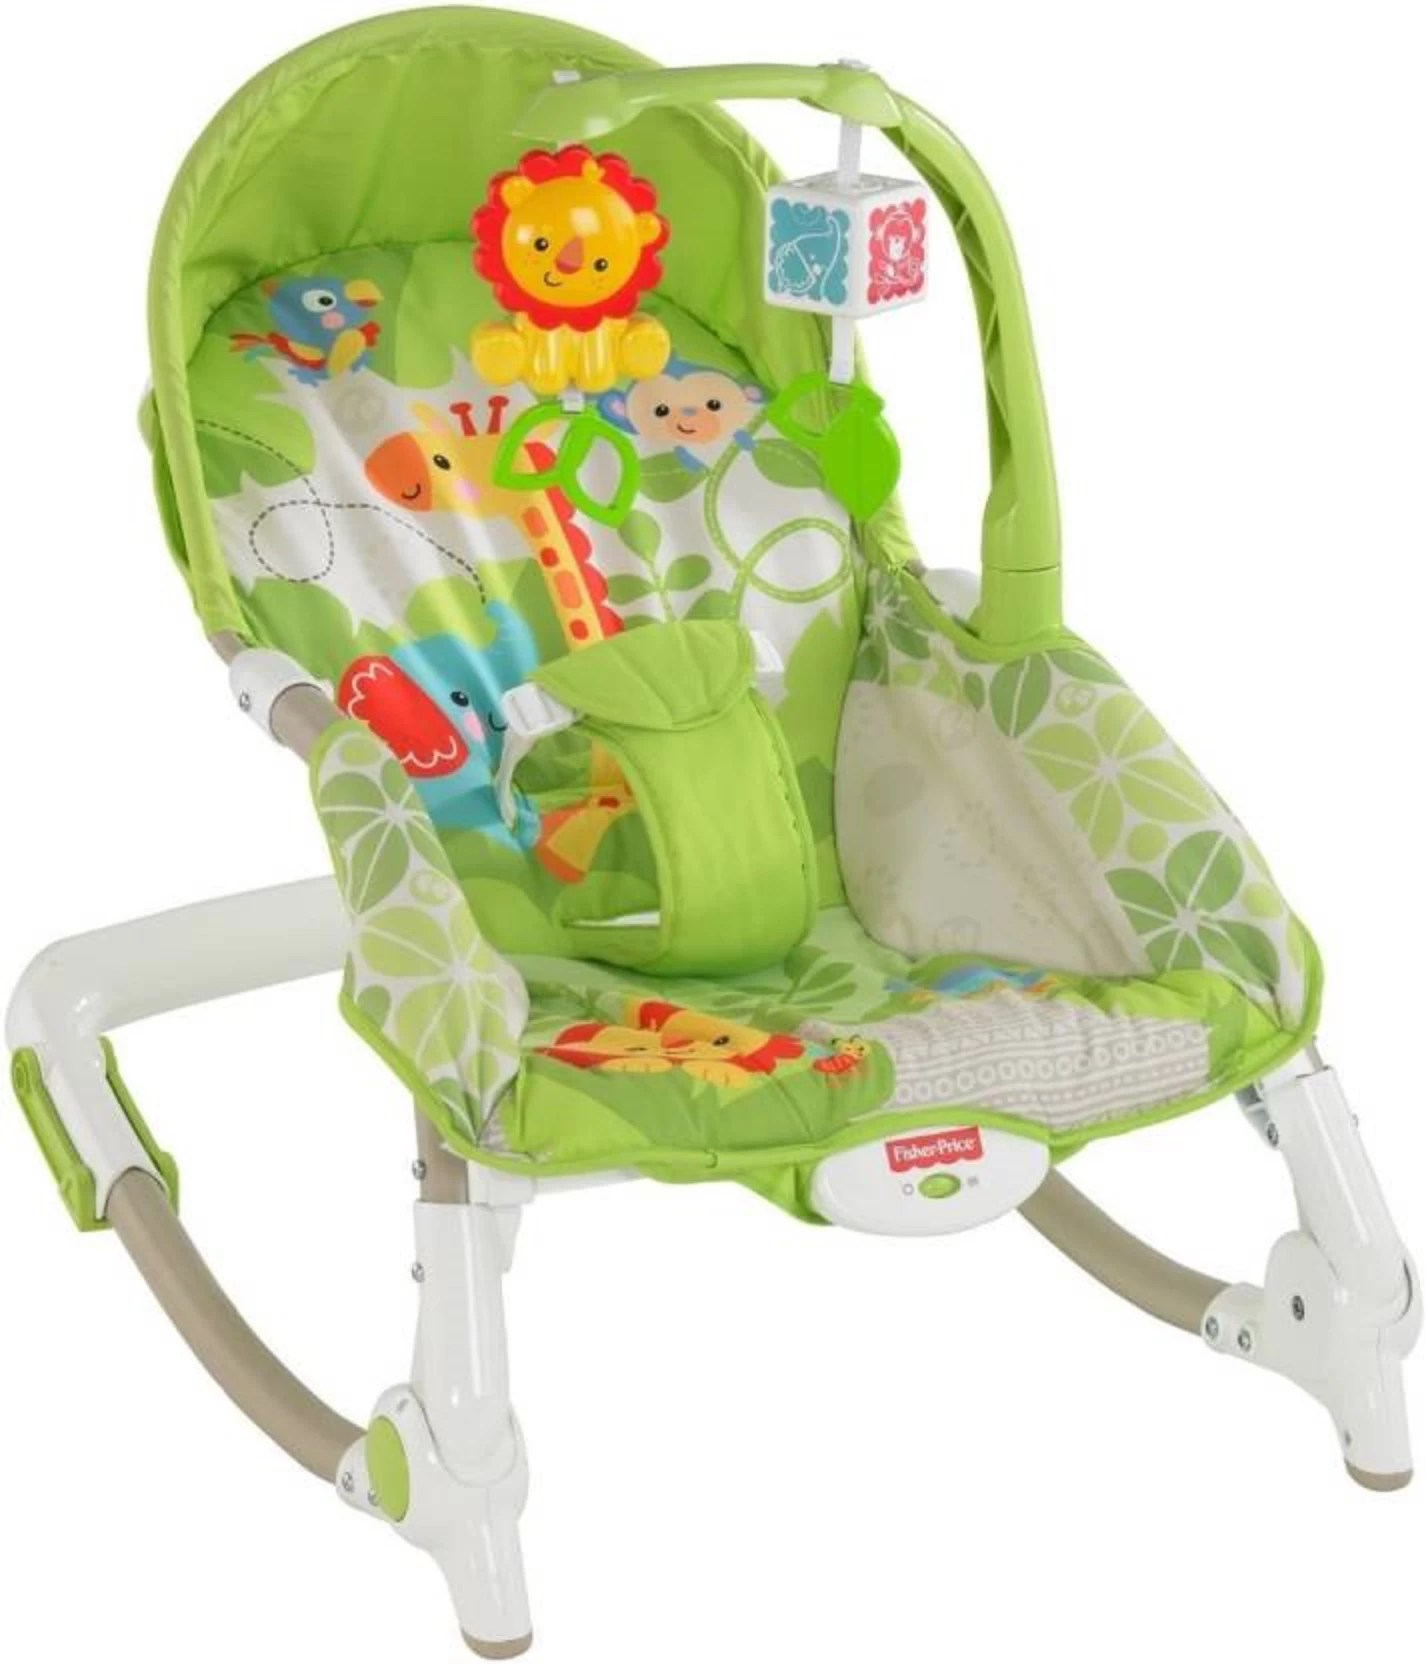 Bouncer Baby Ar Enterprises Baby Bouncer Cum Rocker With Vibration Function Music And 2 Toys Non Electric Bouncer